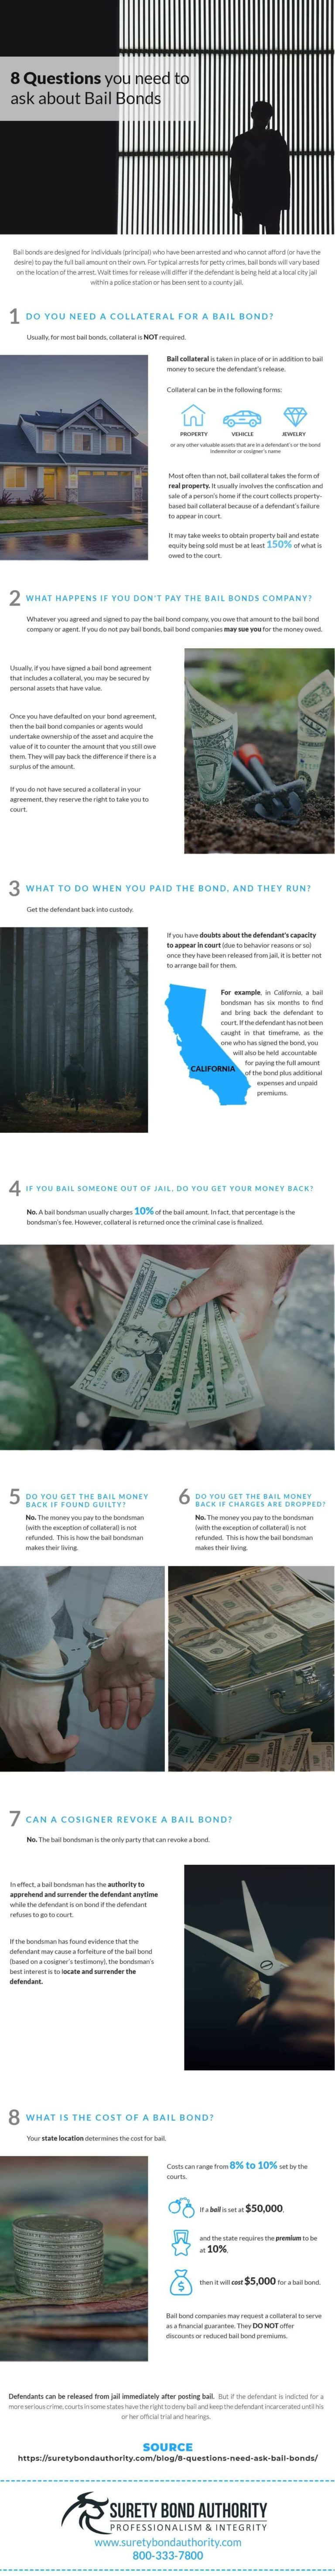 8 Questions about Bail Bonds Infographic